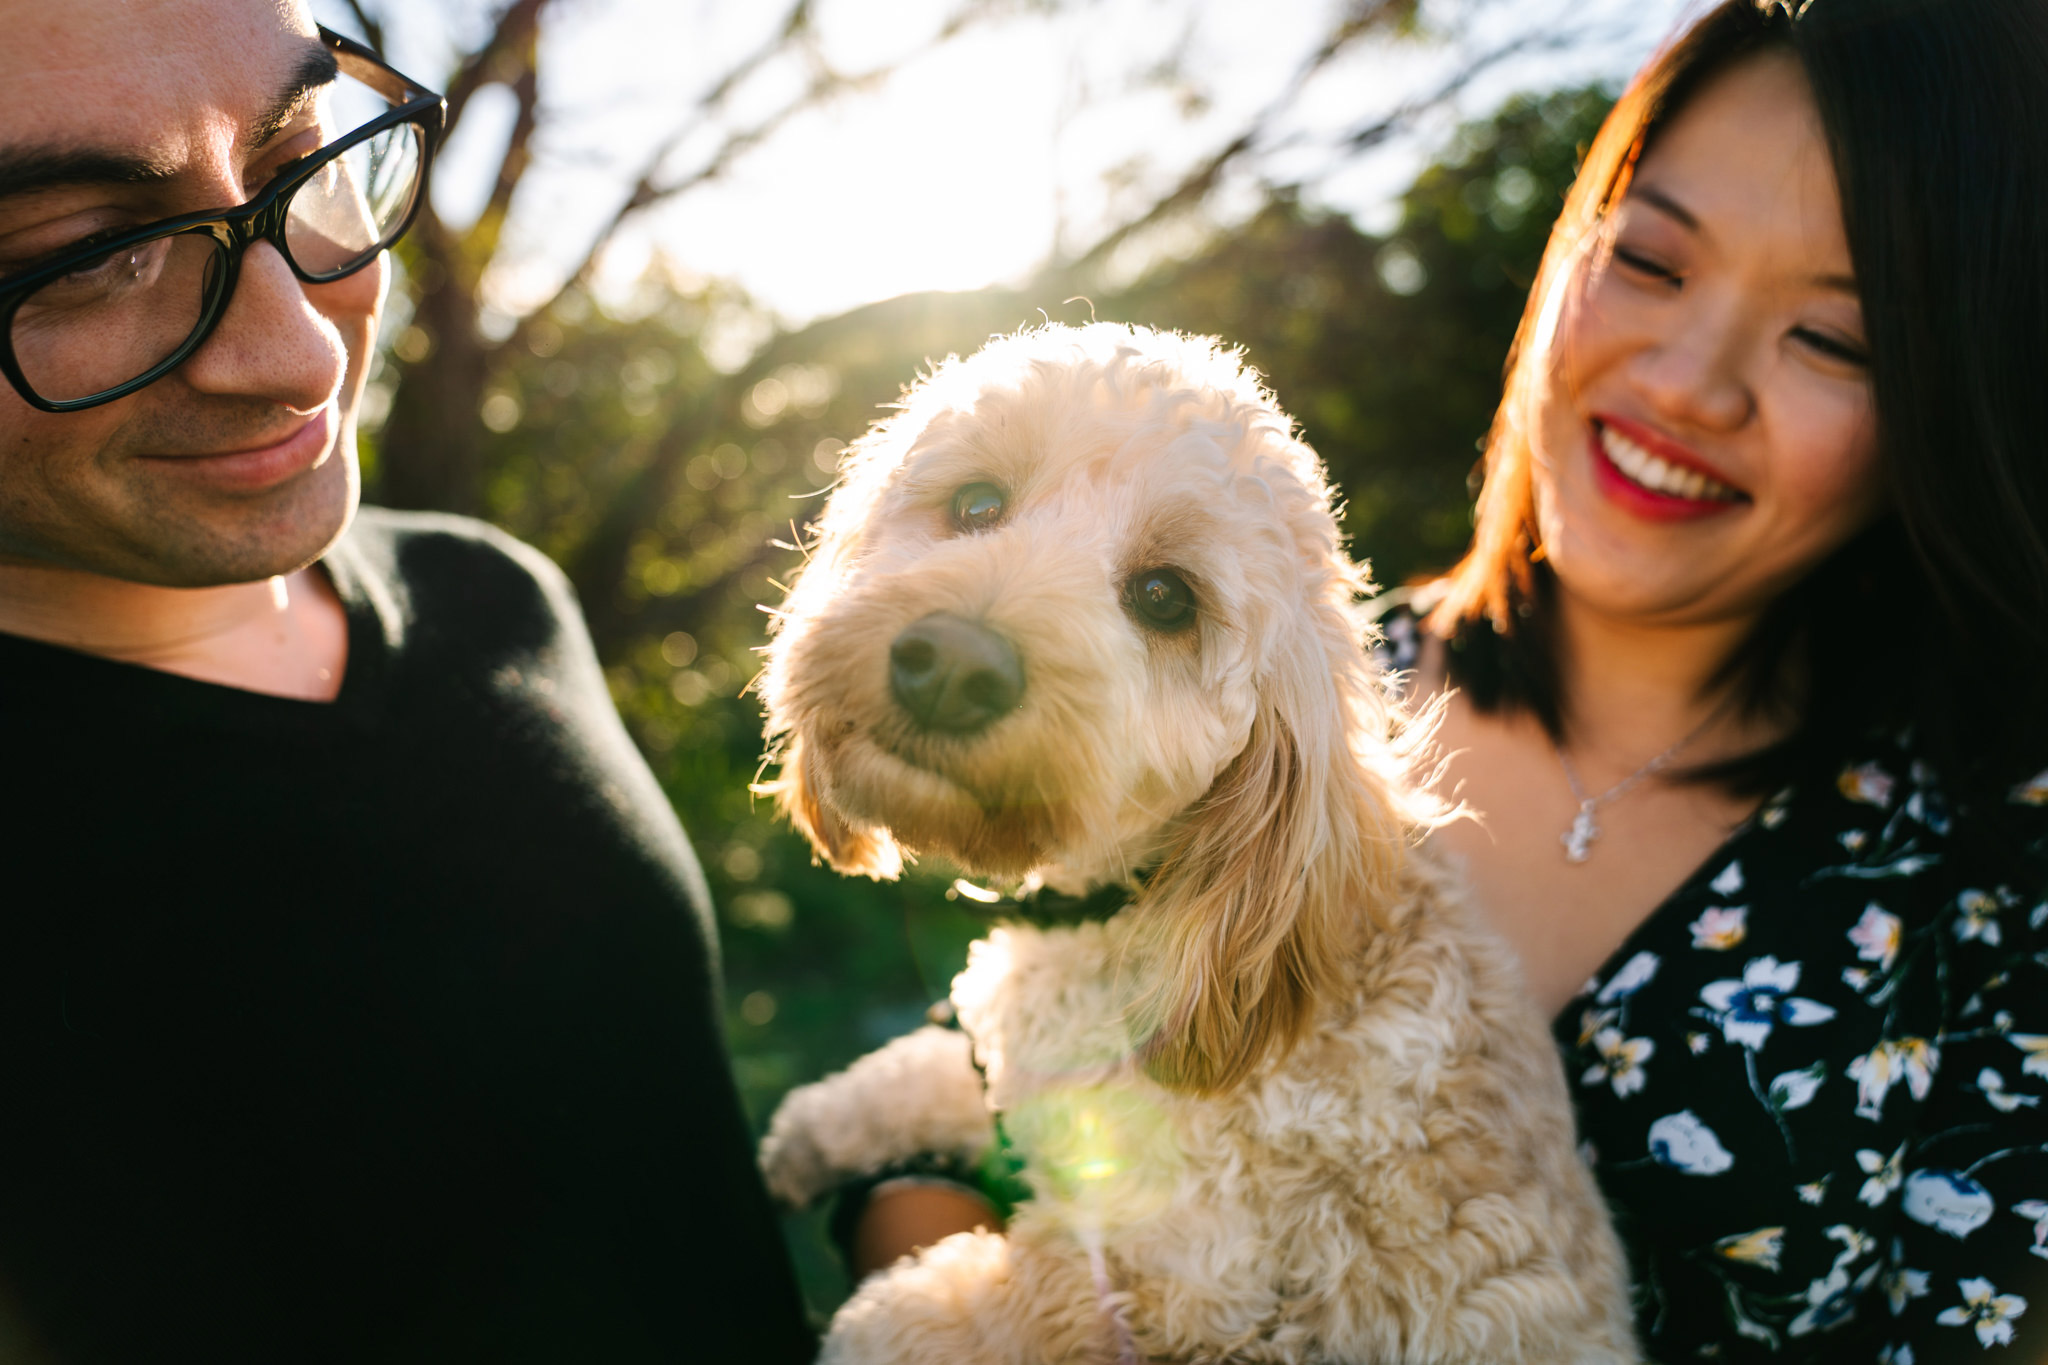 Cute poodle looking at camera while pregnant mother and father look on